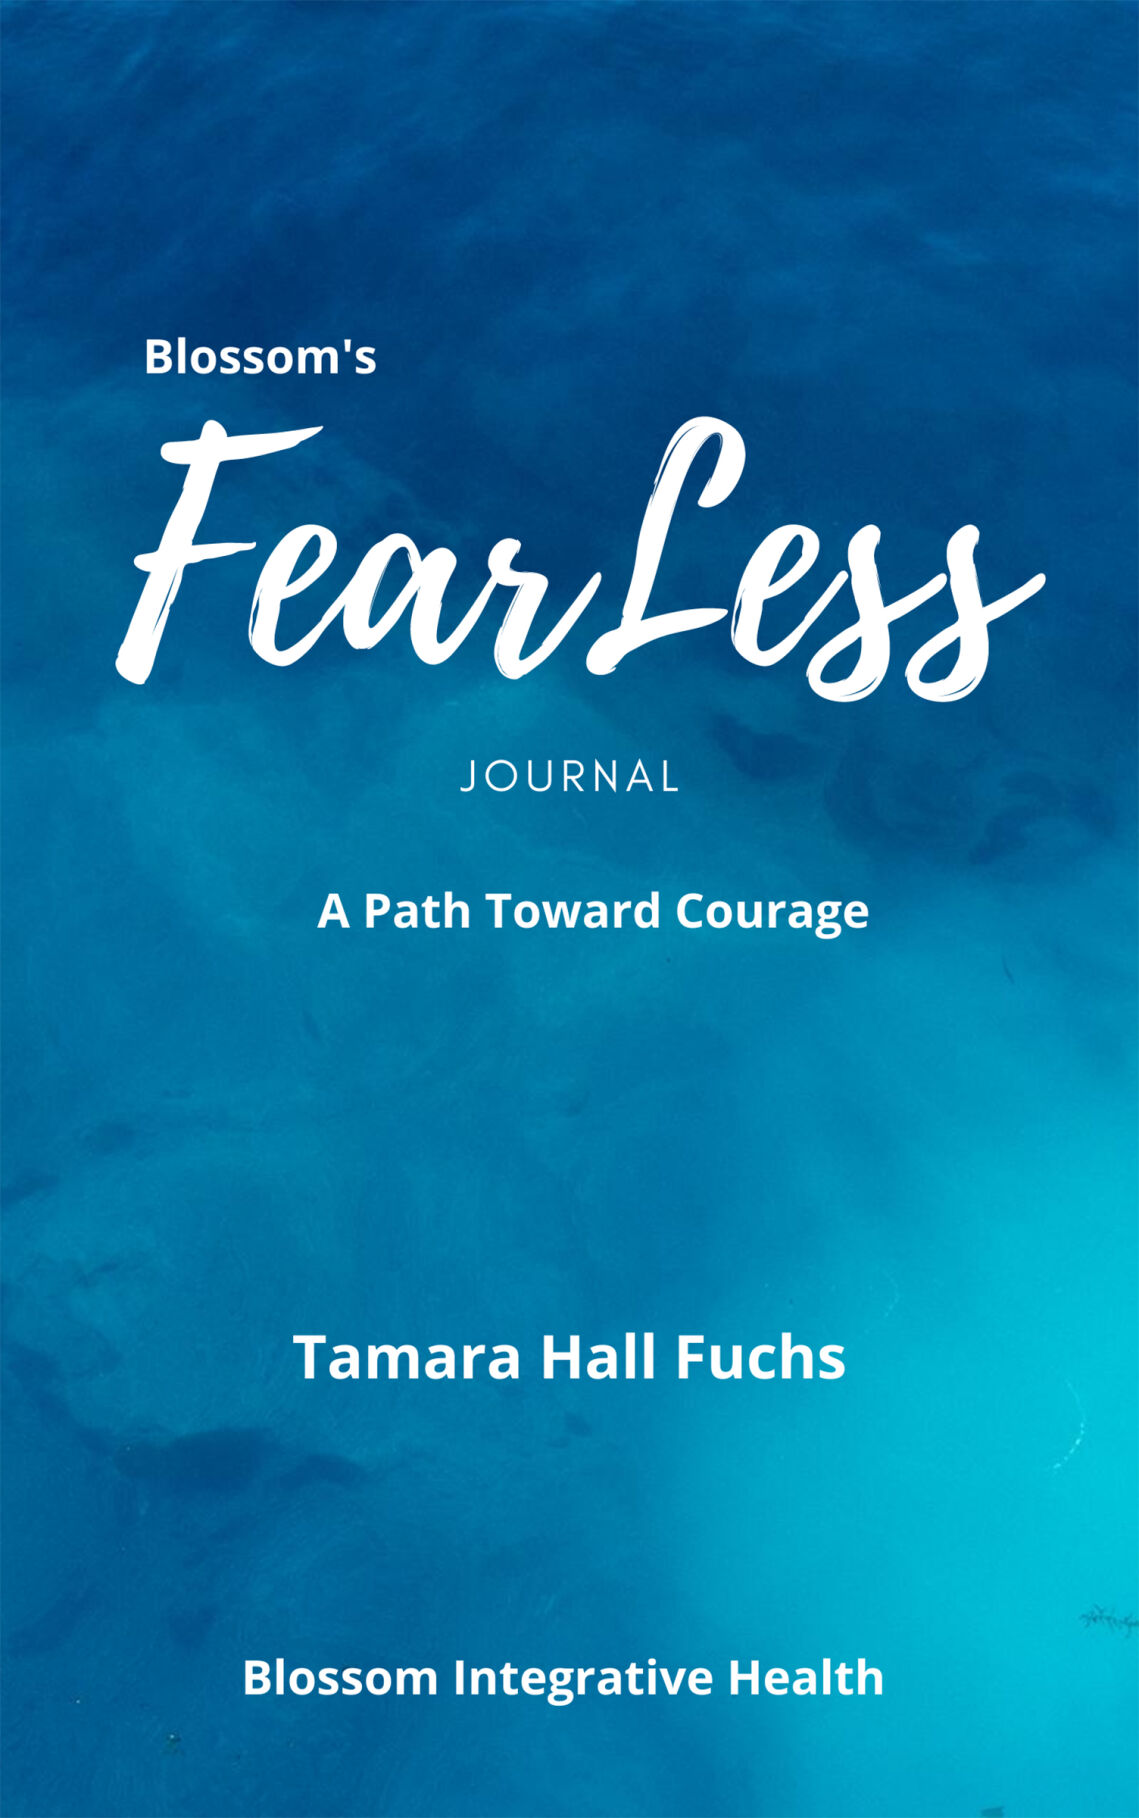 Book Cover Blossoms fearless journal